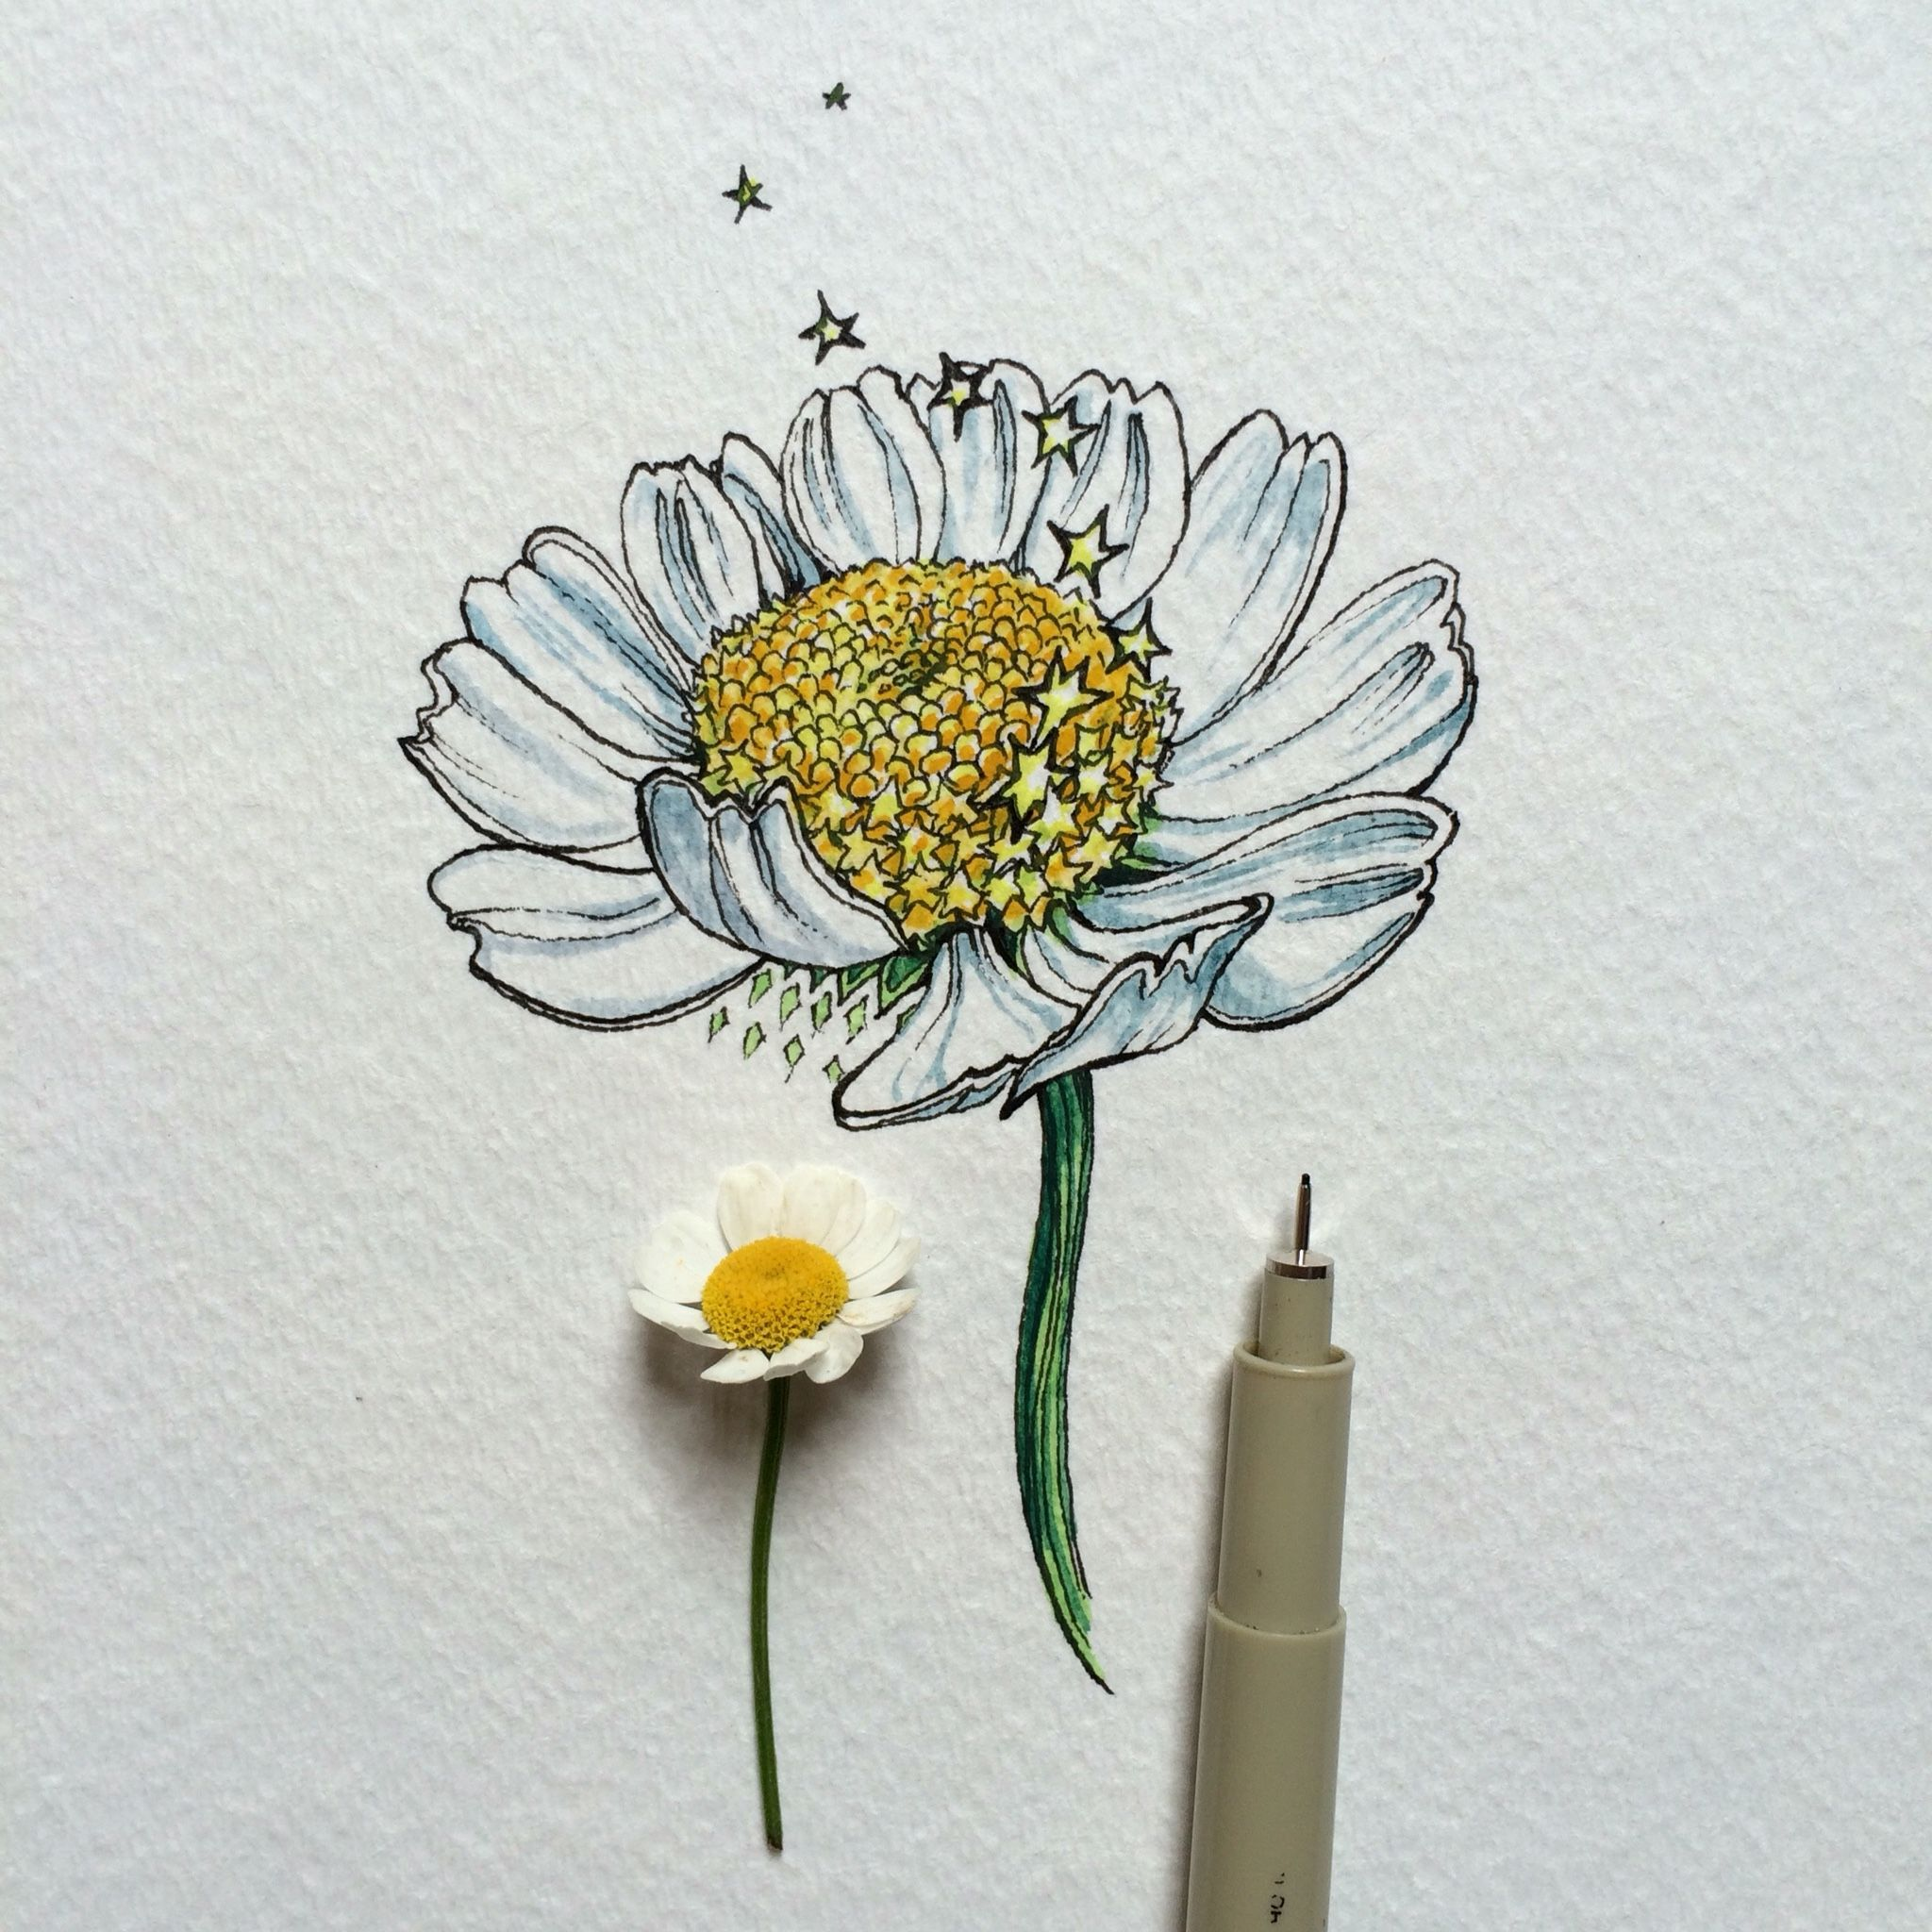 Ink u watercolor flowers pinterest watercolor draw and